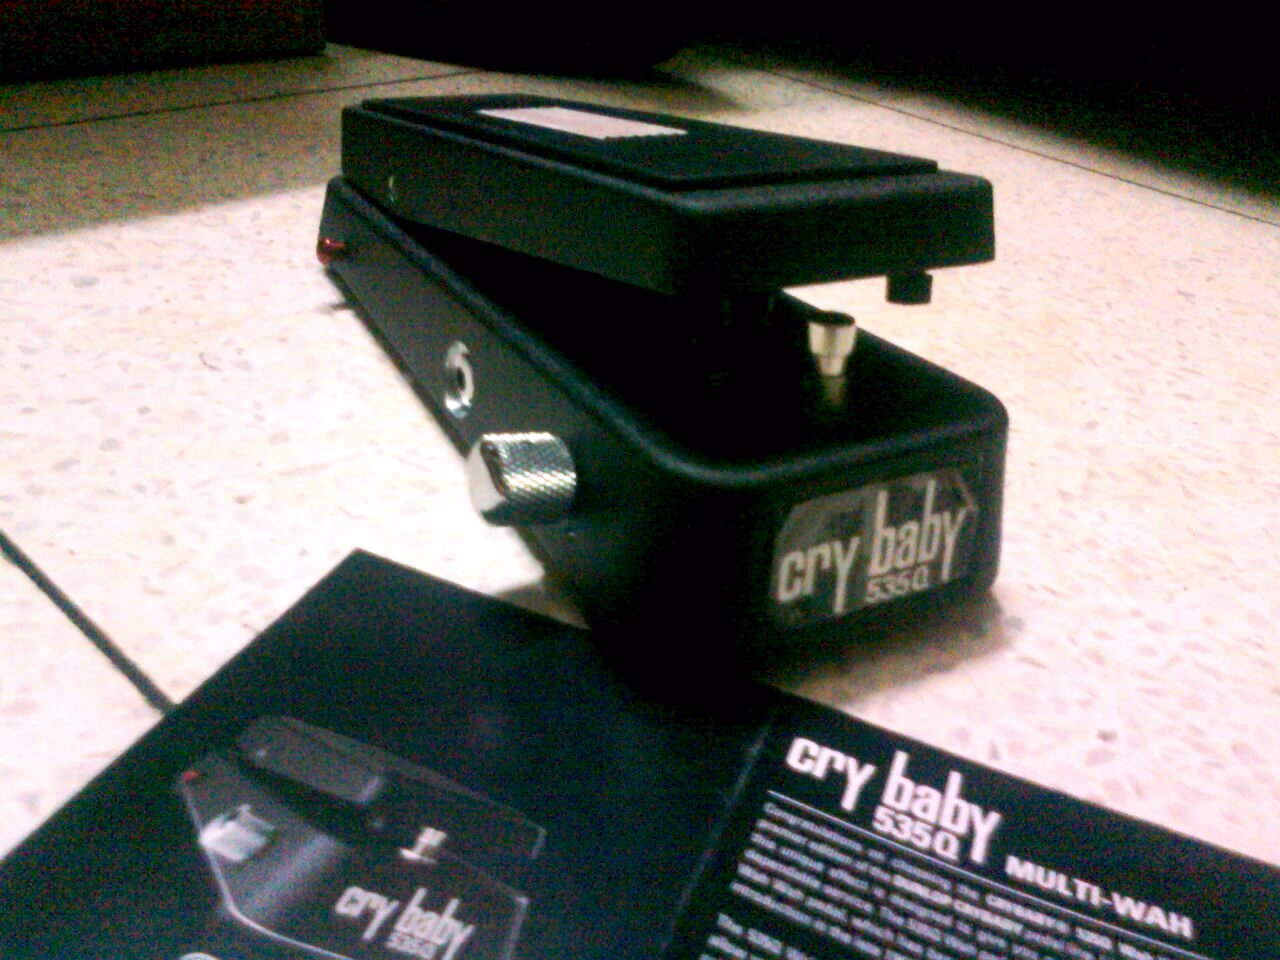 Dunlop Crybaby 535Q wah with jim dunlop fasel inductor | ClickBD large image 0